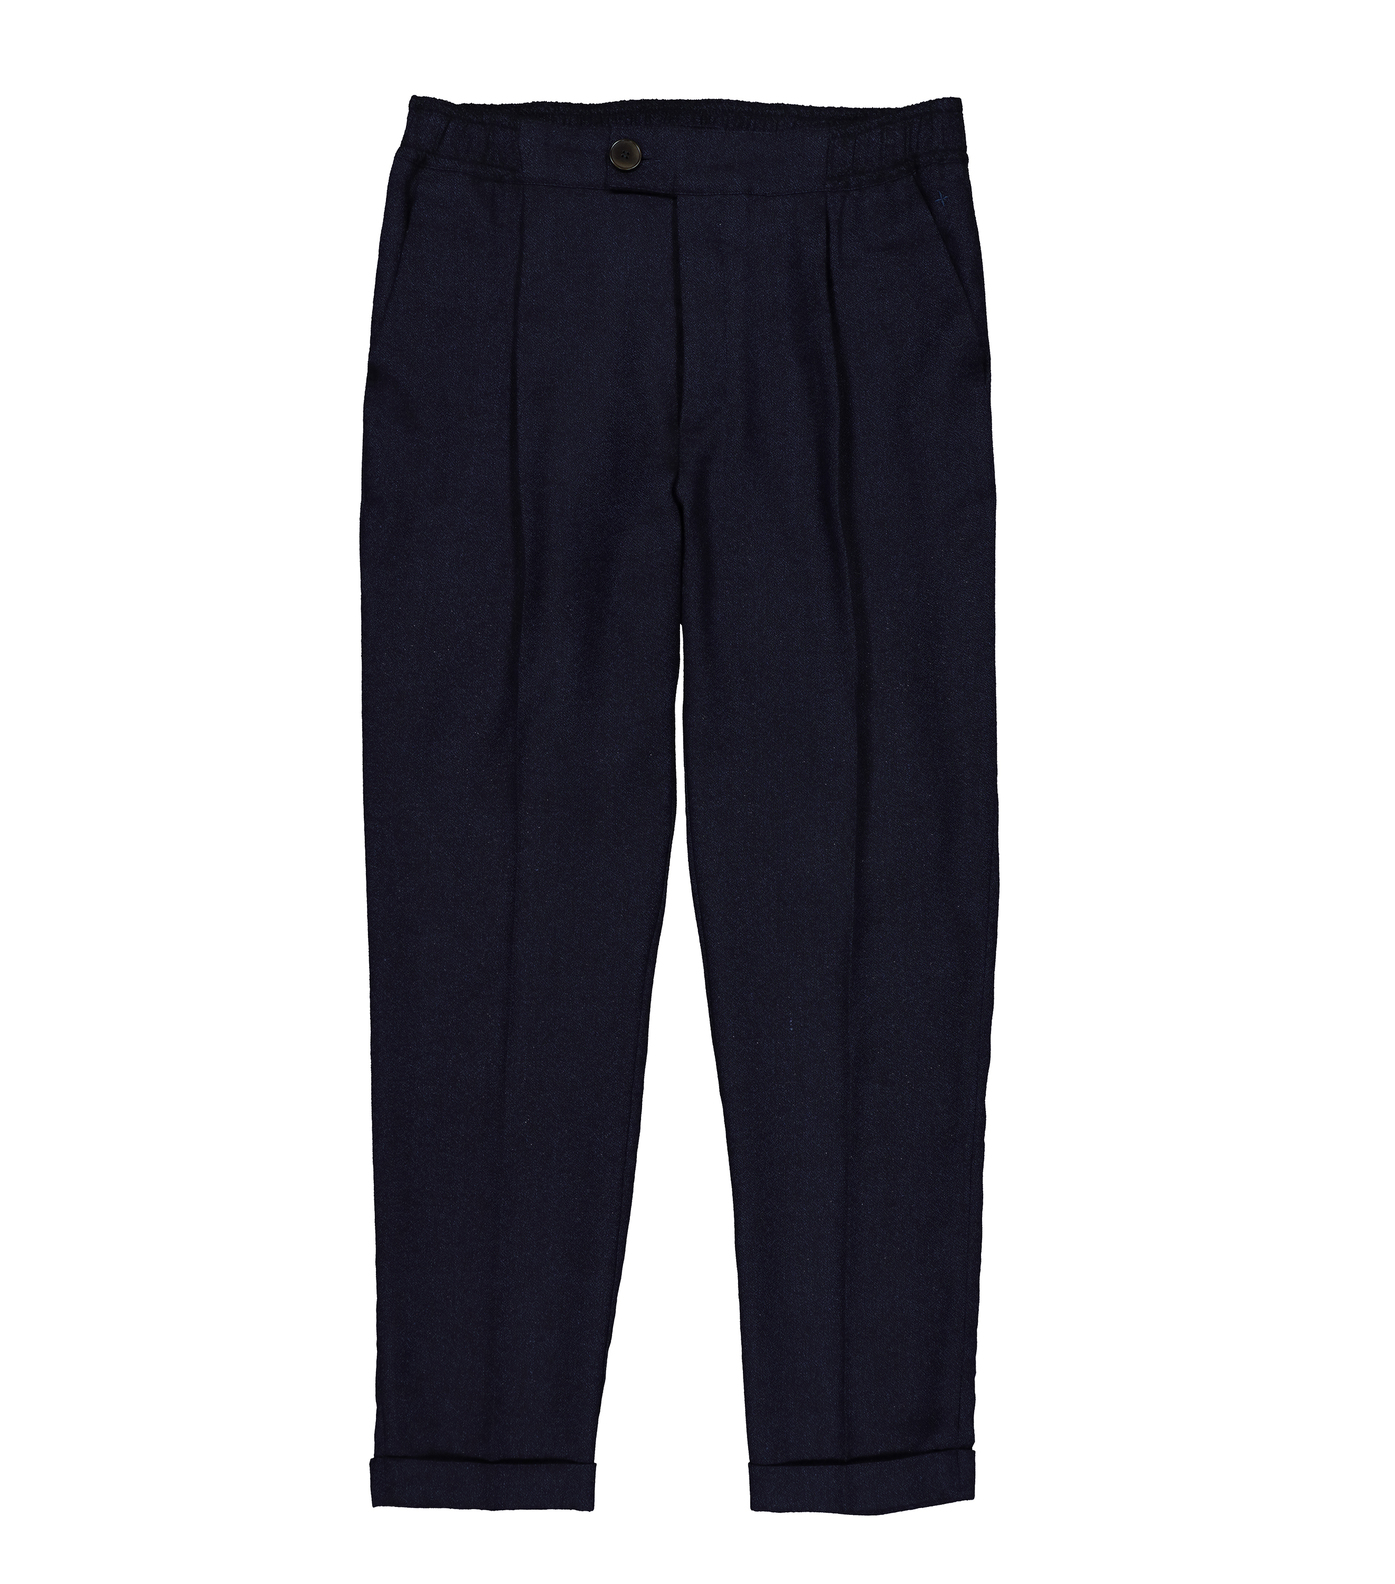 PANTS GN11 - Marl navy